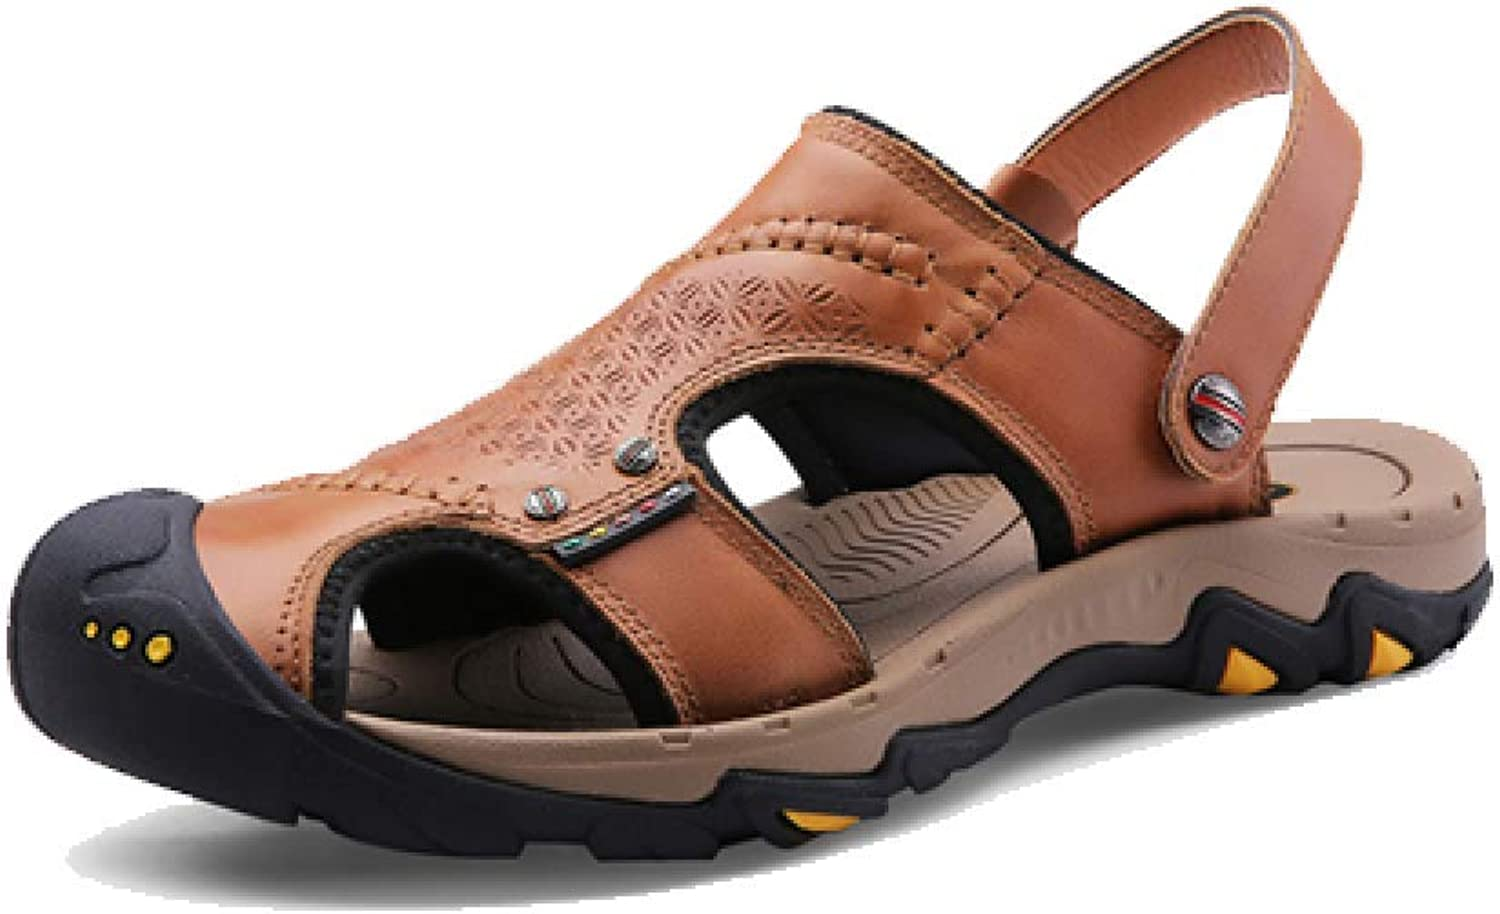 AEYMF Outdoor Baotou Beach shoes Hiking shoes Hiking Men's Sandals